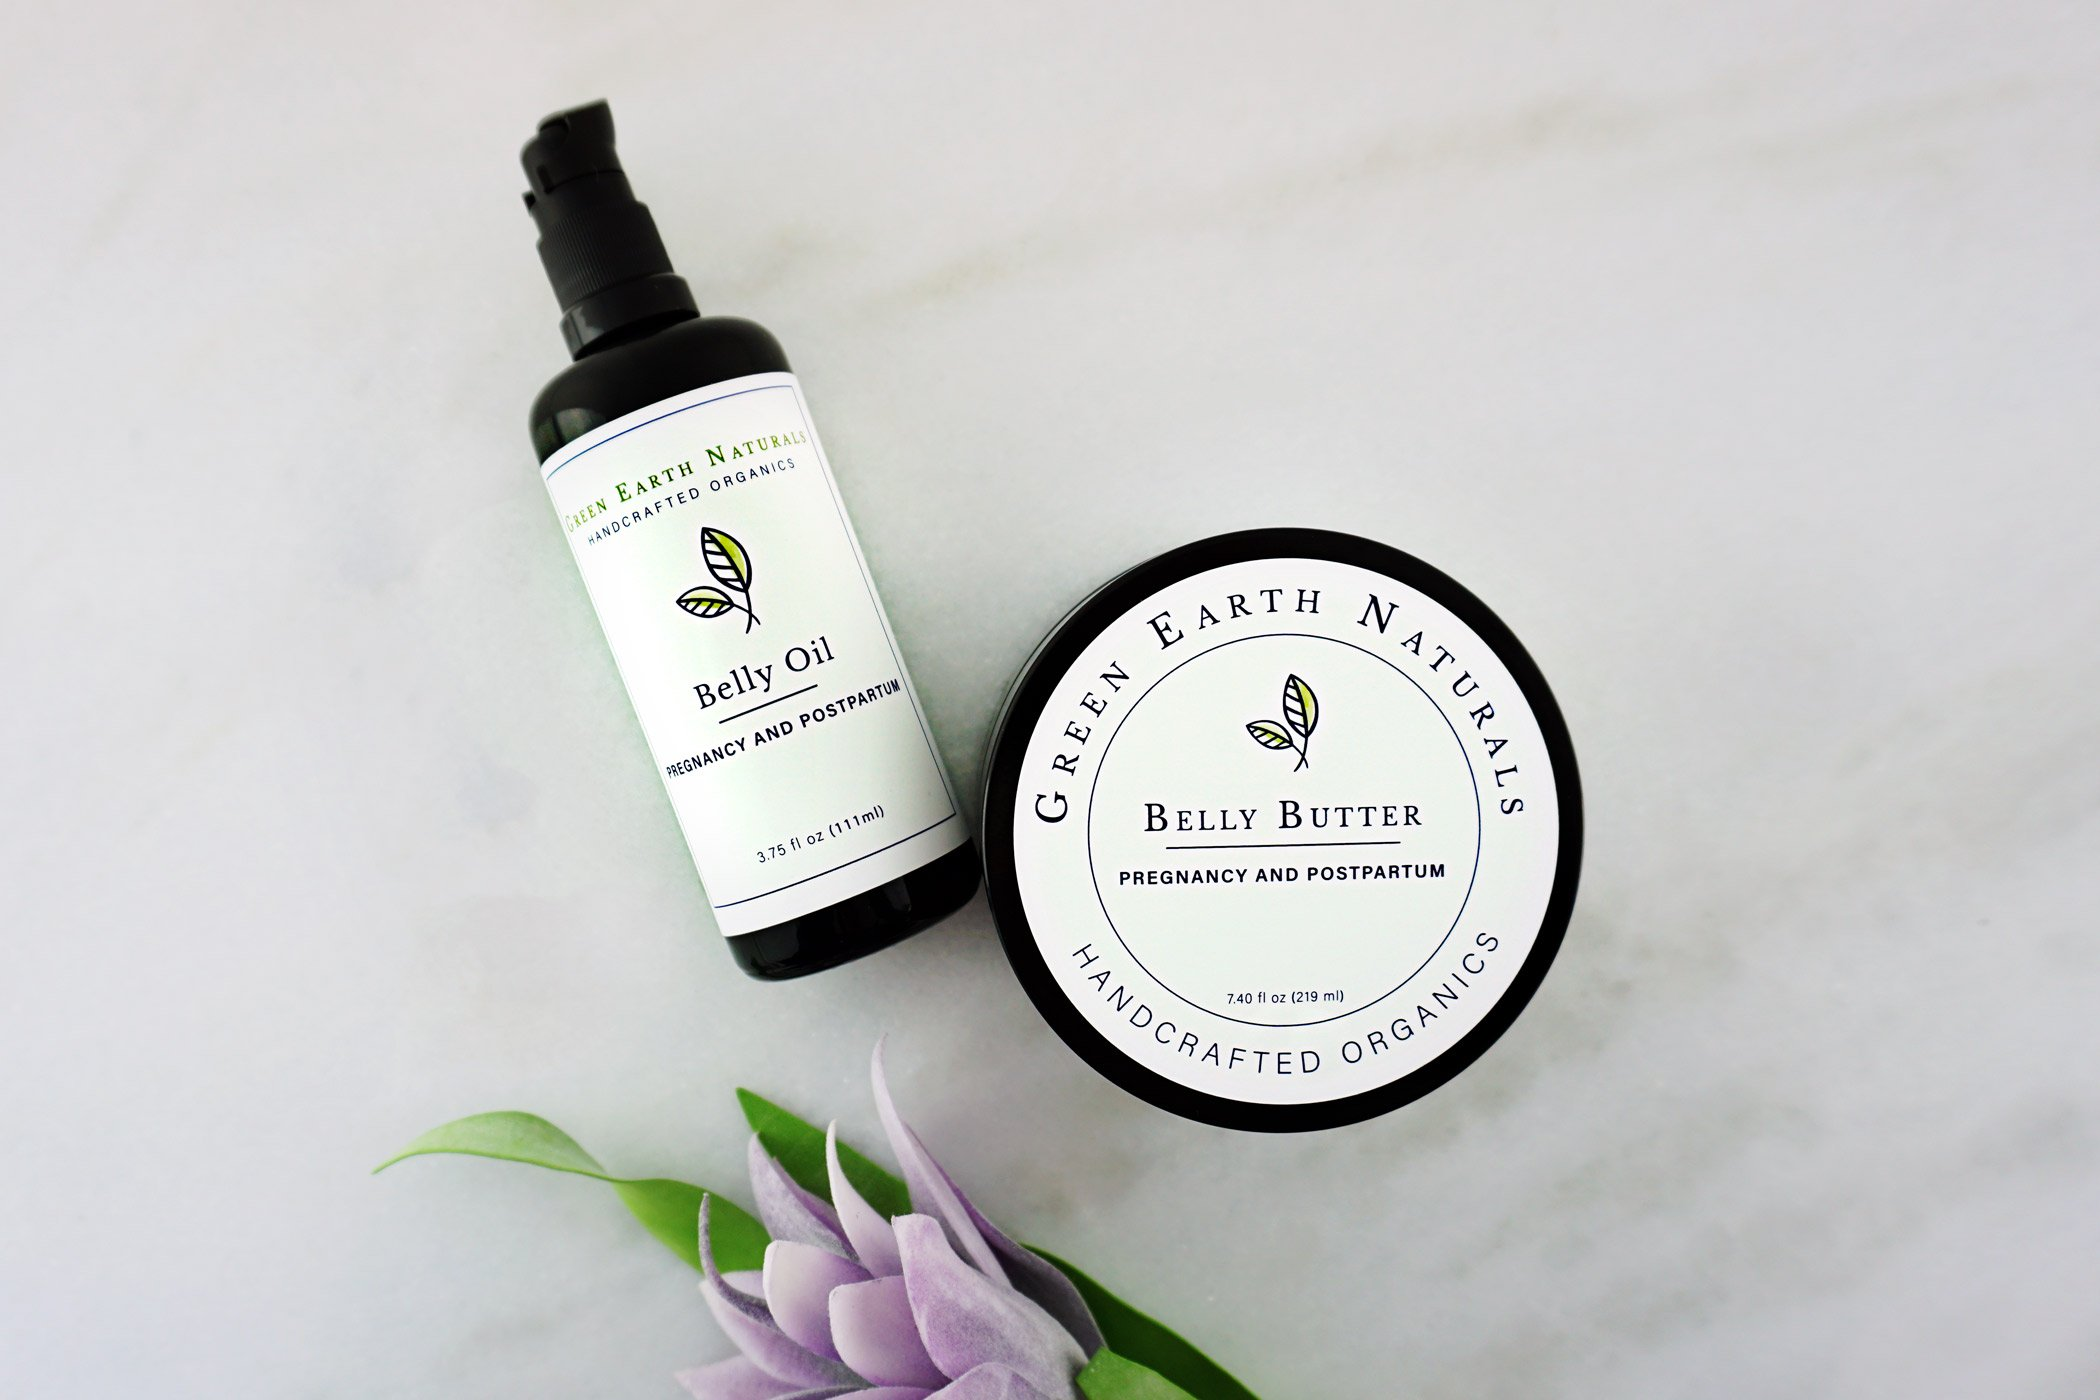 Belly Oil and Belly Butter